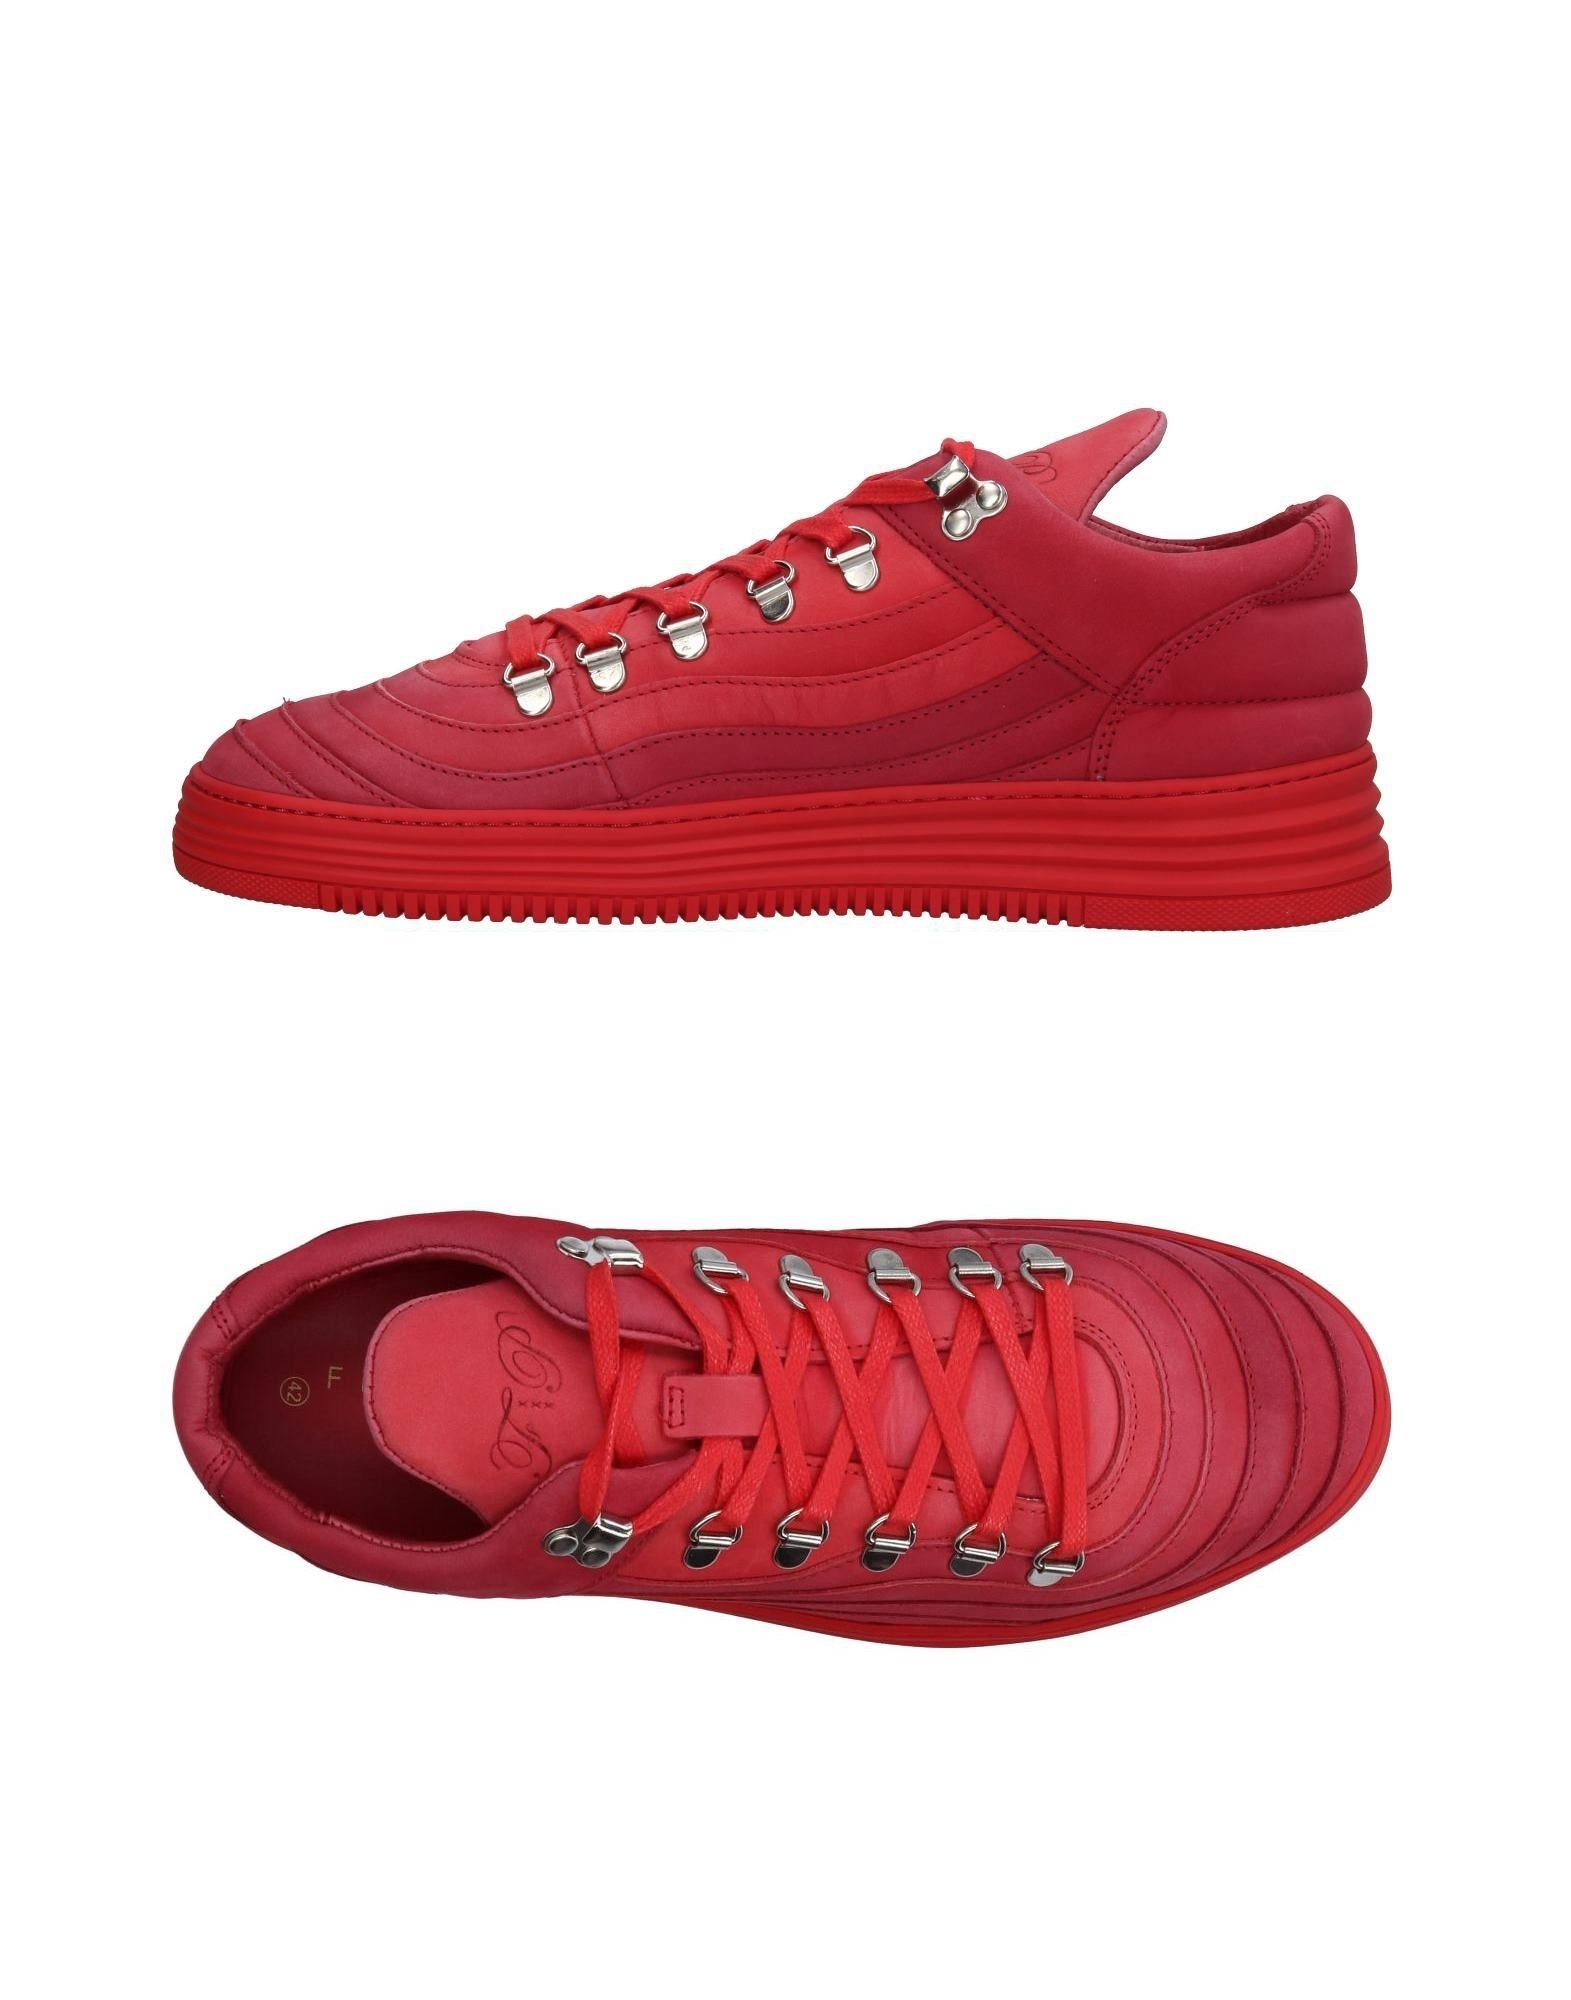 Sneakers Filling Pieces Homme - Sneakers Filling Pieces  Rouge Chaussures femme pas cher homme et femme